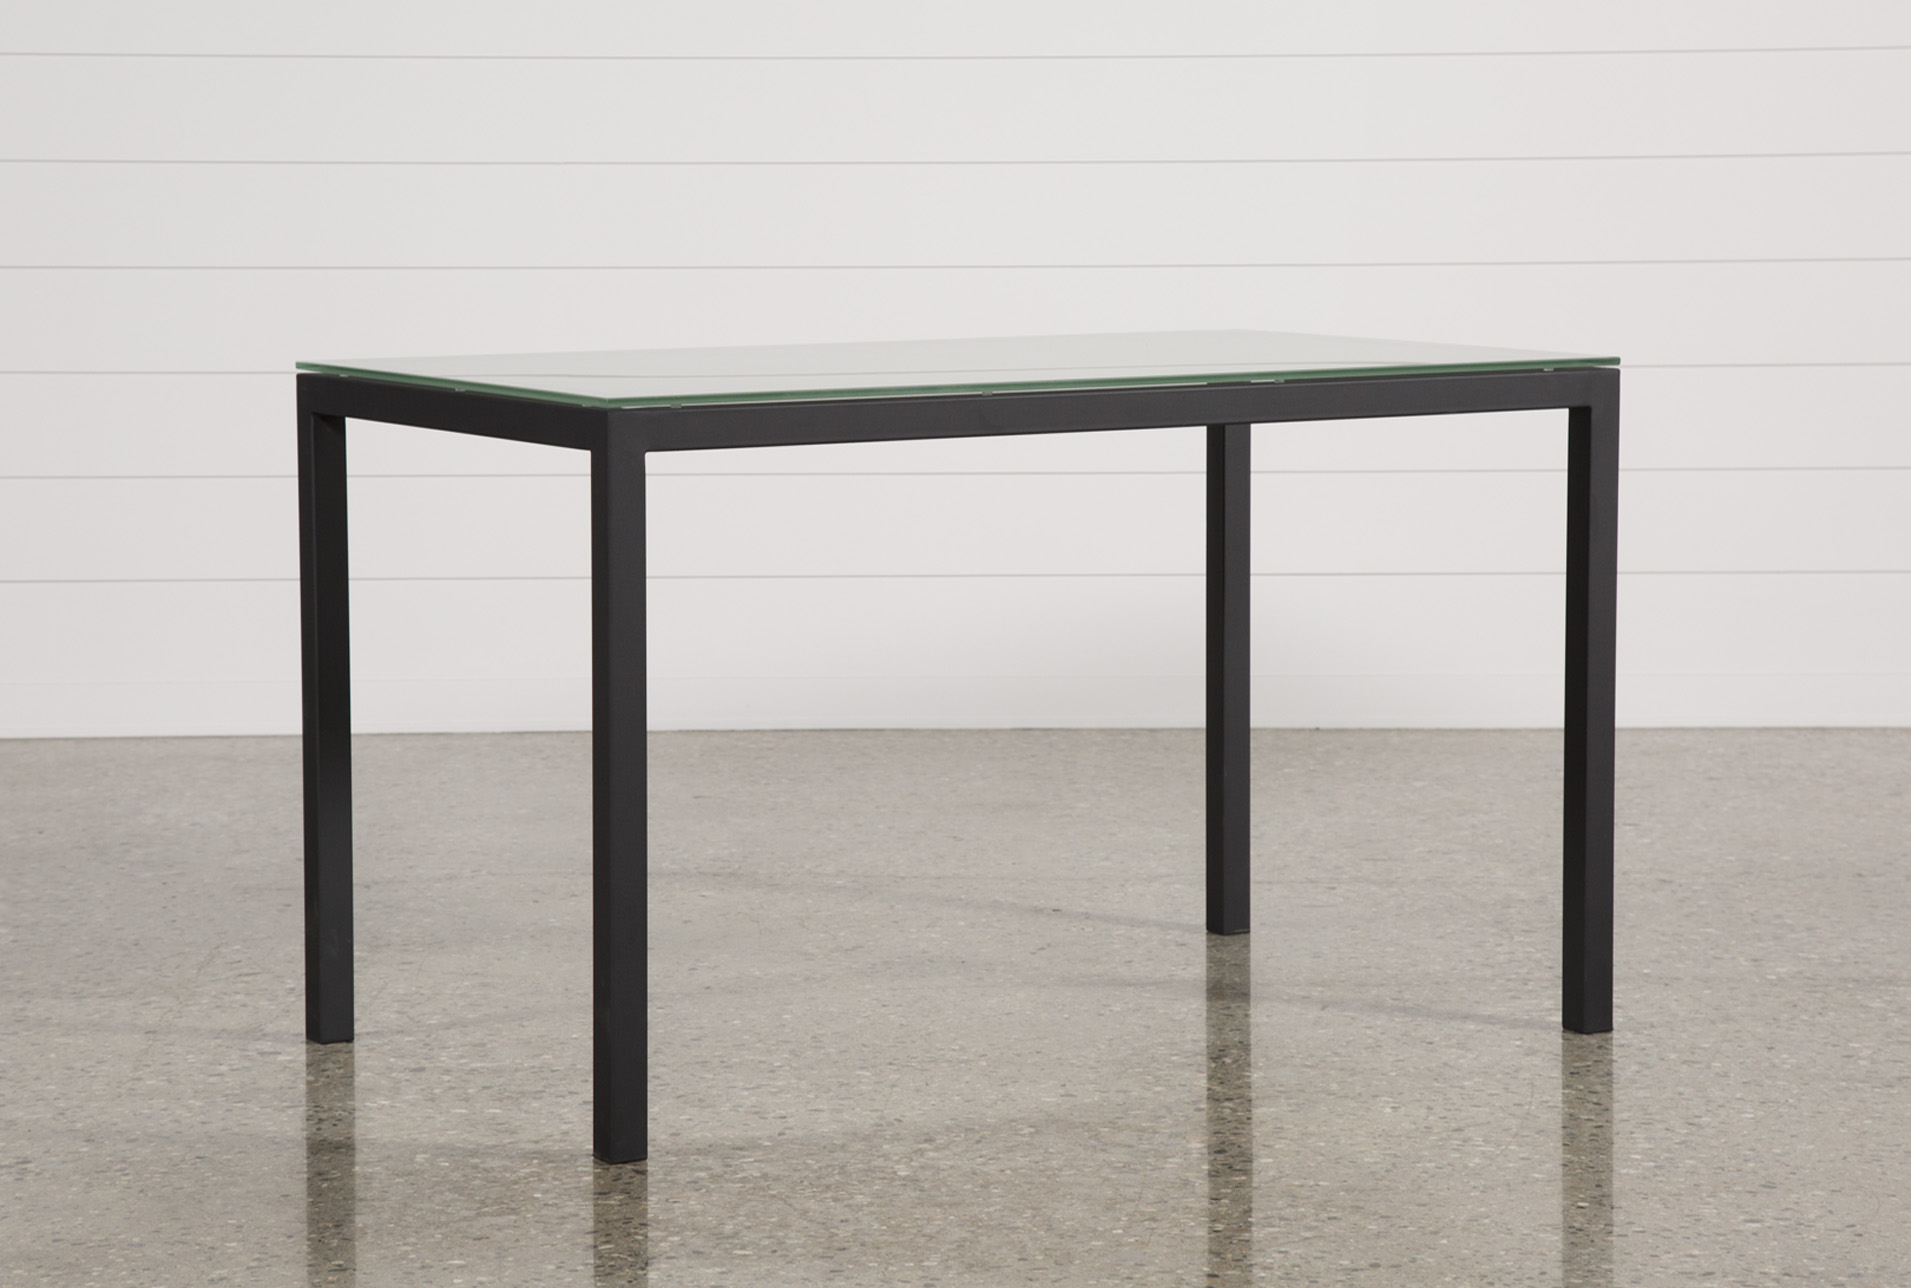 Ina Matte Black 60 Inch Counter Table W/Frosted Glass (Qty: 1) Has Been  Successfully Added To Your Cart.